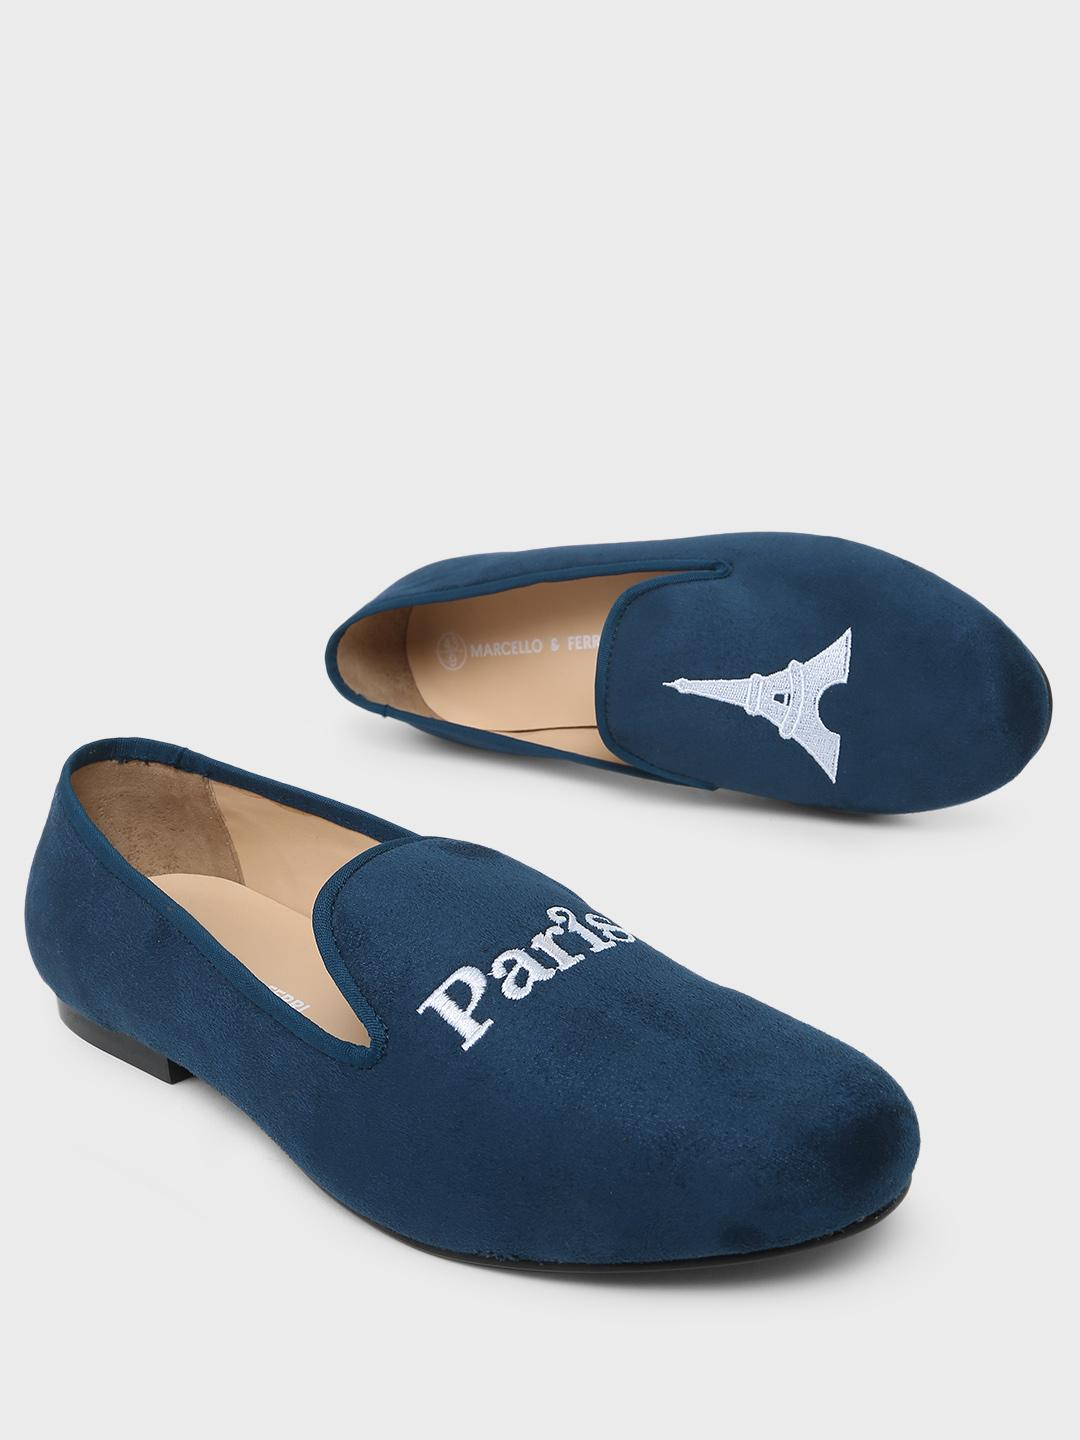 Marcello & Ferri Navy Paris Embroidered Loafers 1